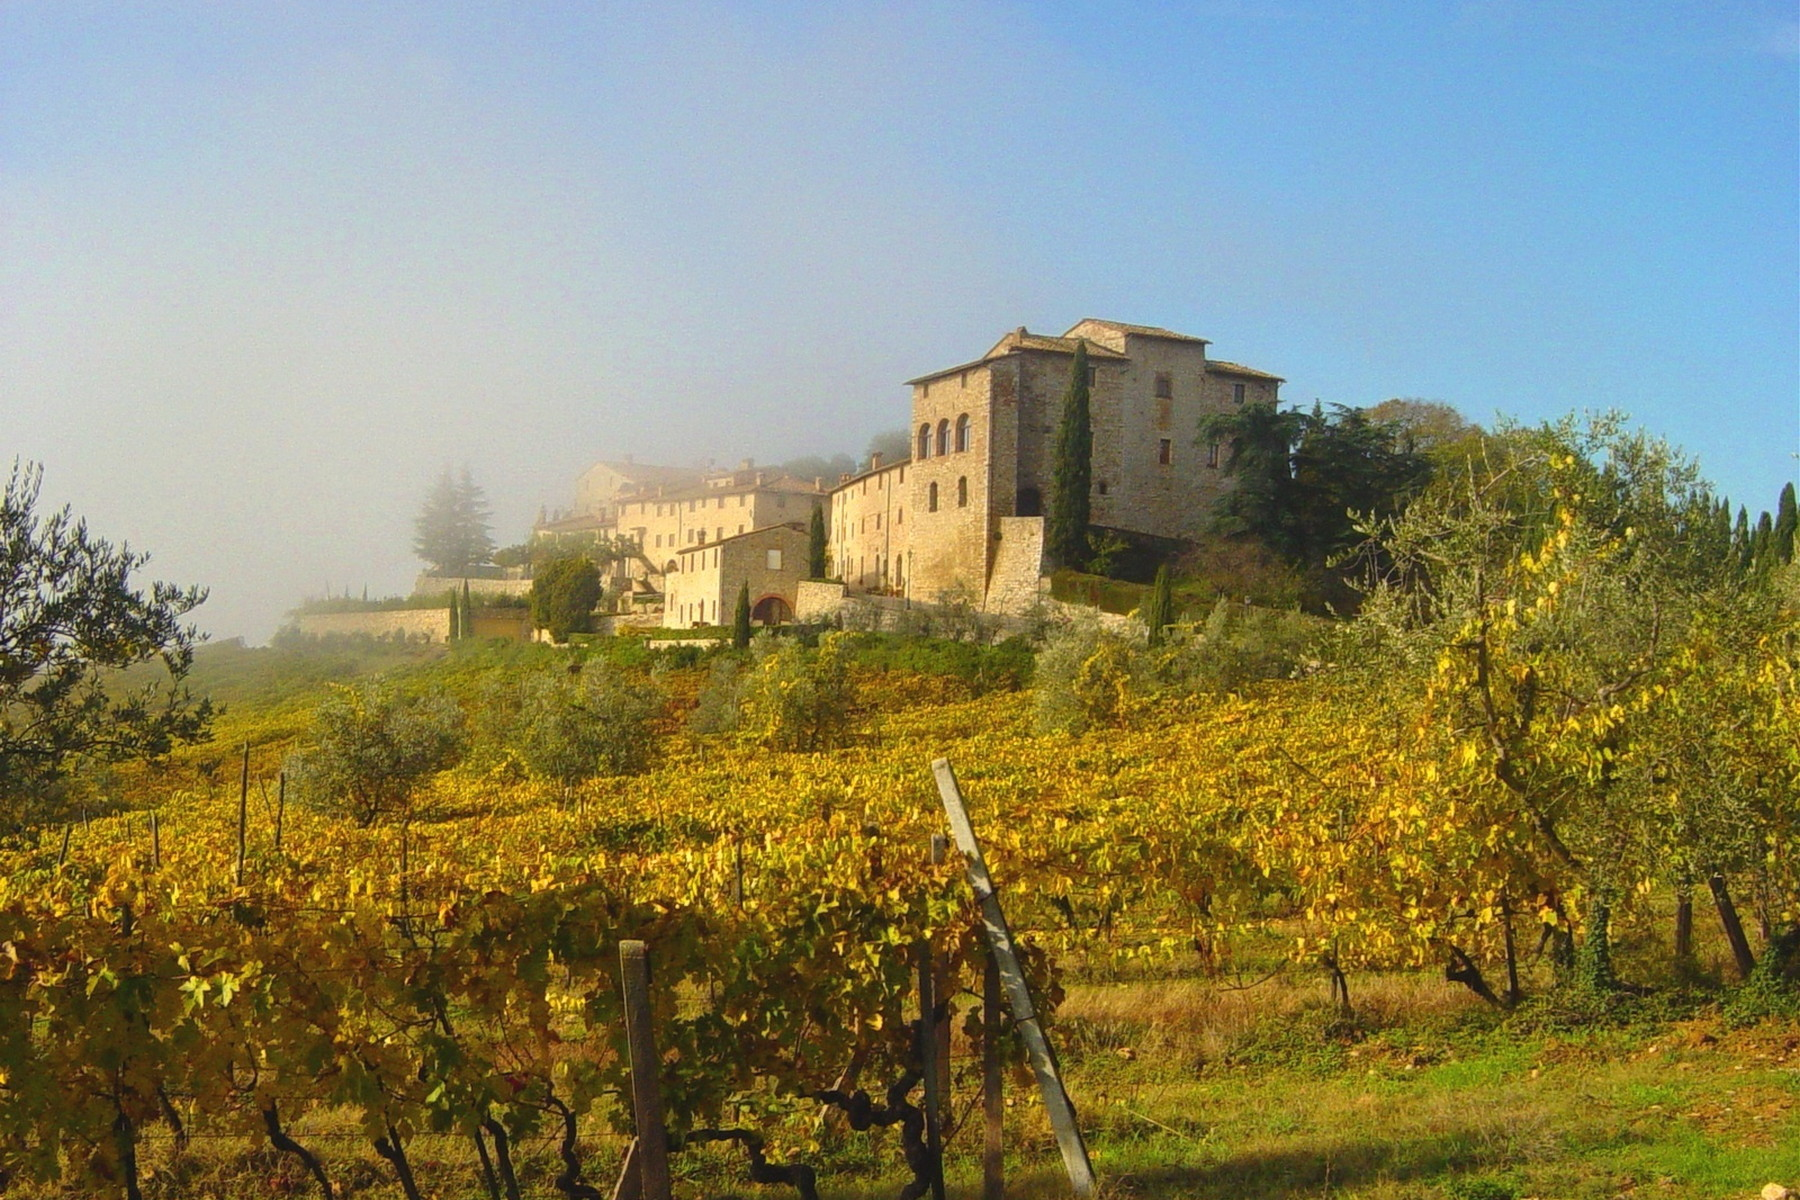 Single Family Home for Sale at Historic castle in Chianti with vineyard Gaiole In Chianti, Siena, 53013 Italy